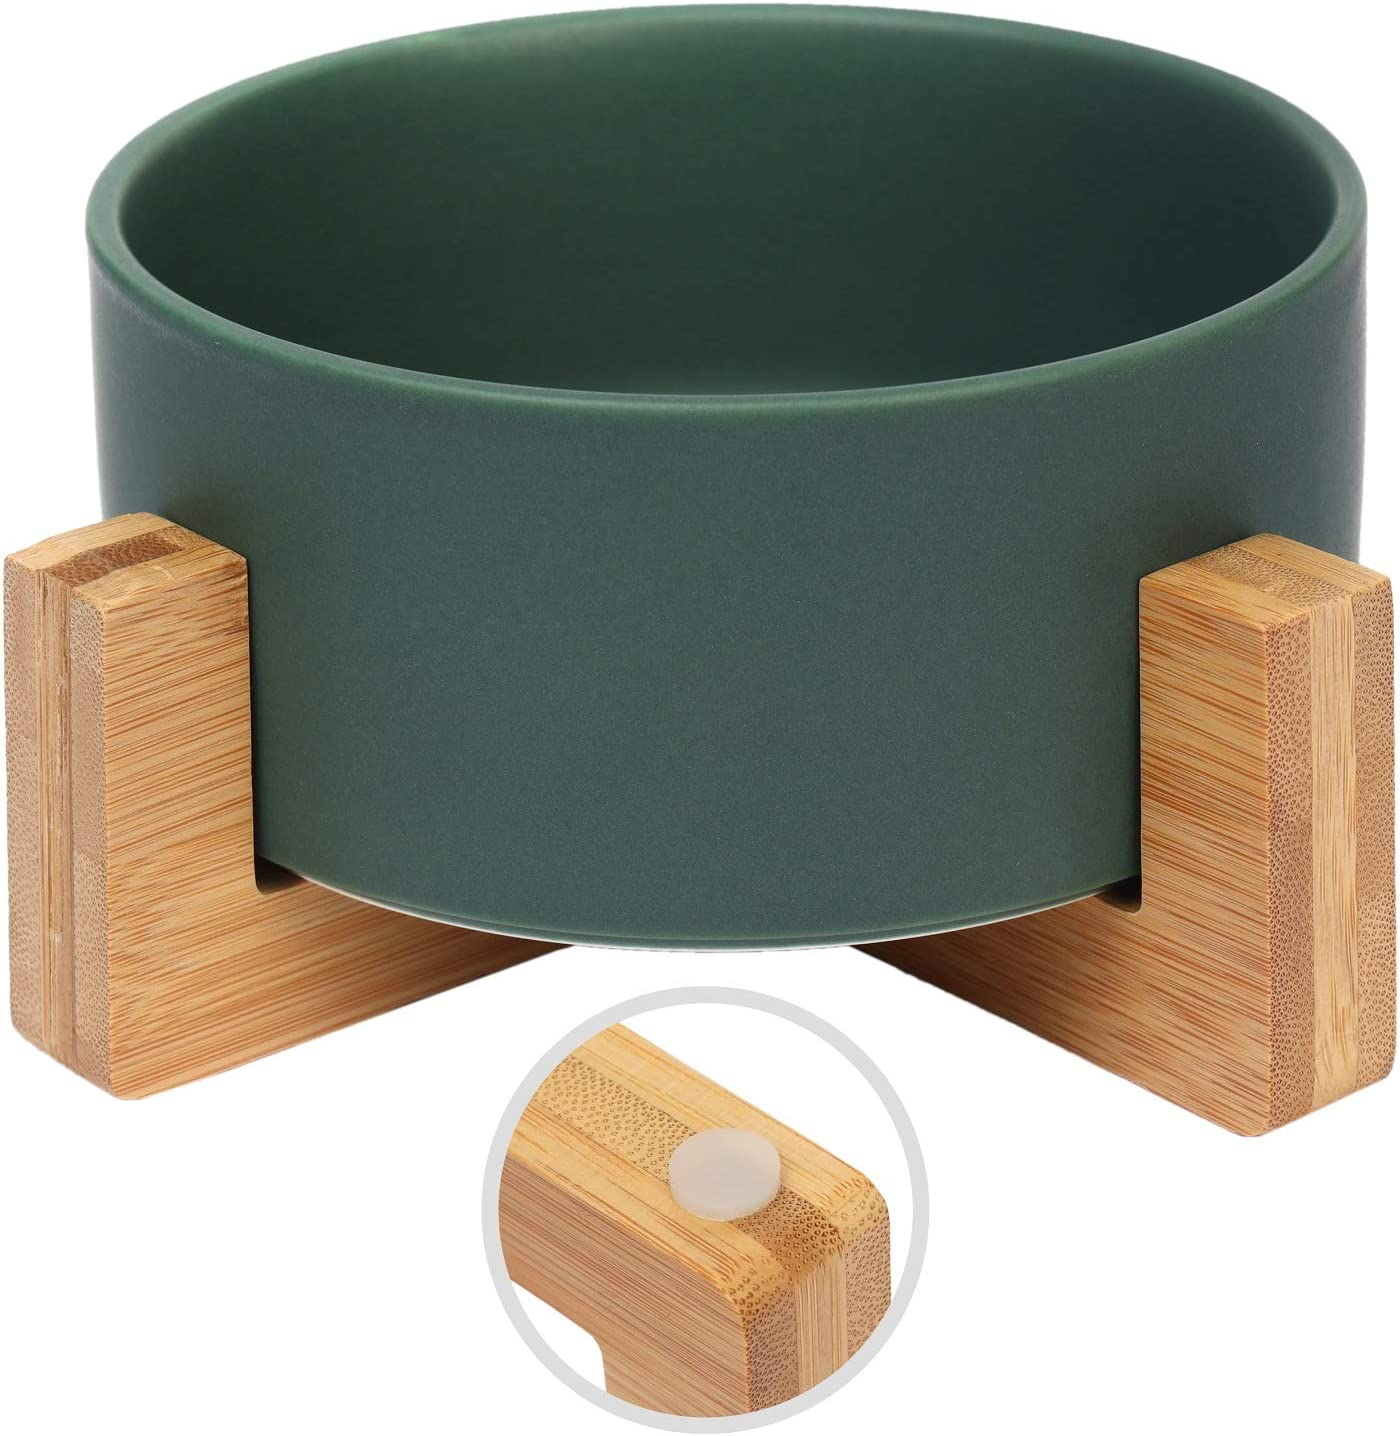 Olsa Ceramic Cat Dog Bowlwith Anti-Slip Bamboo Stand, Round Dog Food Bowl, Elevated Cat Dog Bowls, Large Capacity Pet Bowl, Dog Food and Water Bowlfor Dogs Cats, Easy to Clean, Holds 30 Ounces